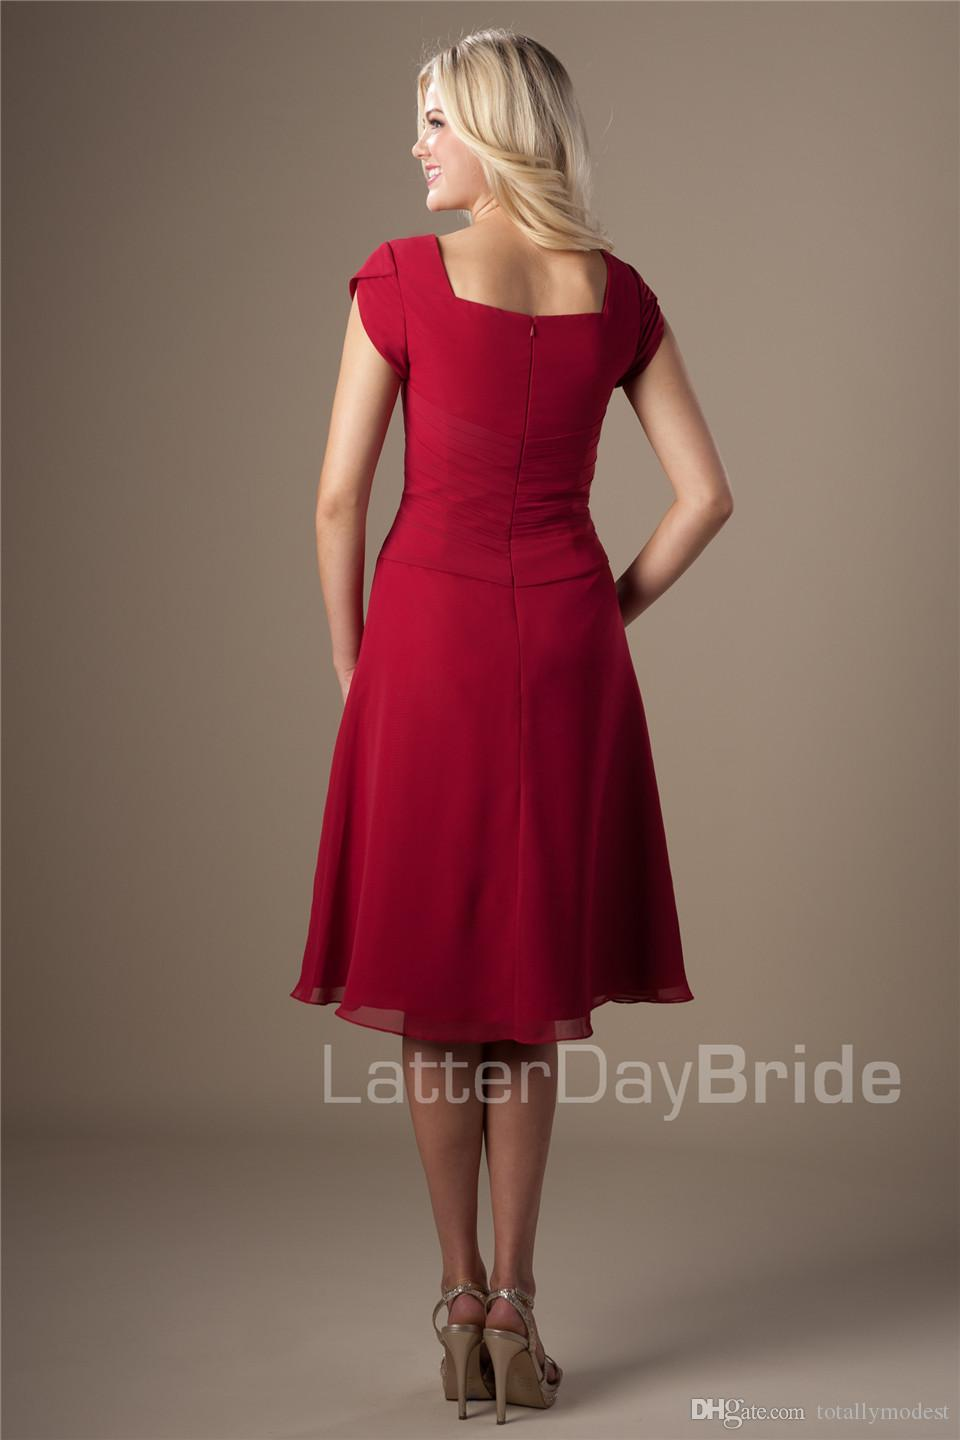 Simple Dark Red Chiffon Short Modest Bridesmaid Dresses With Short Sleeves A-line Knee Length Maids of Honor Dresses Wedding Party Dresses